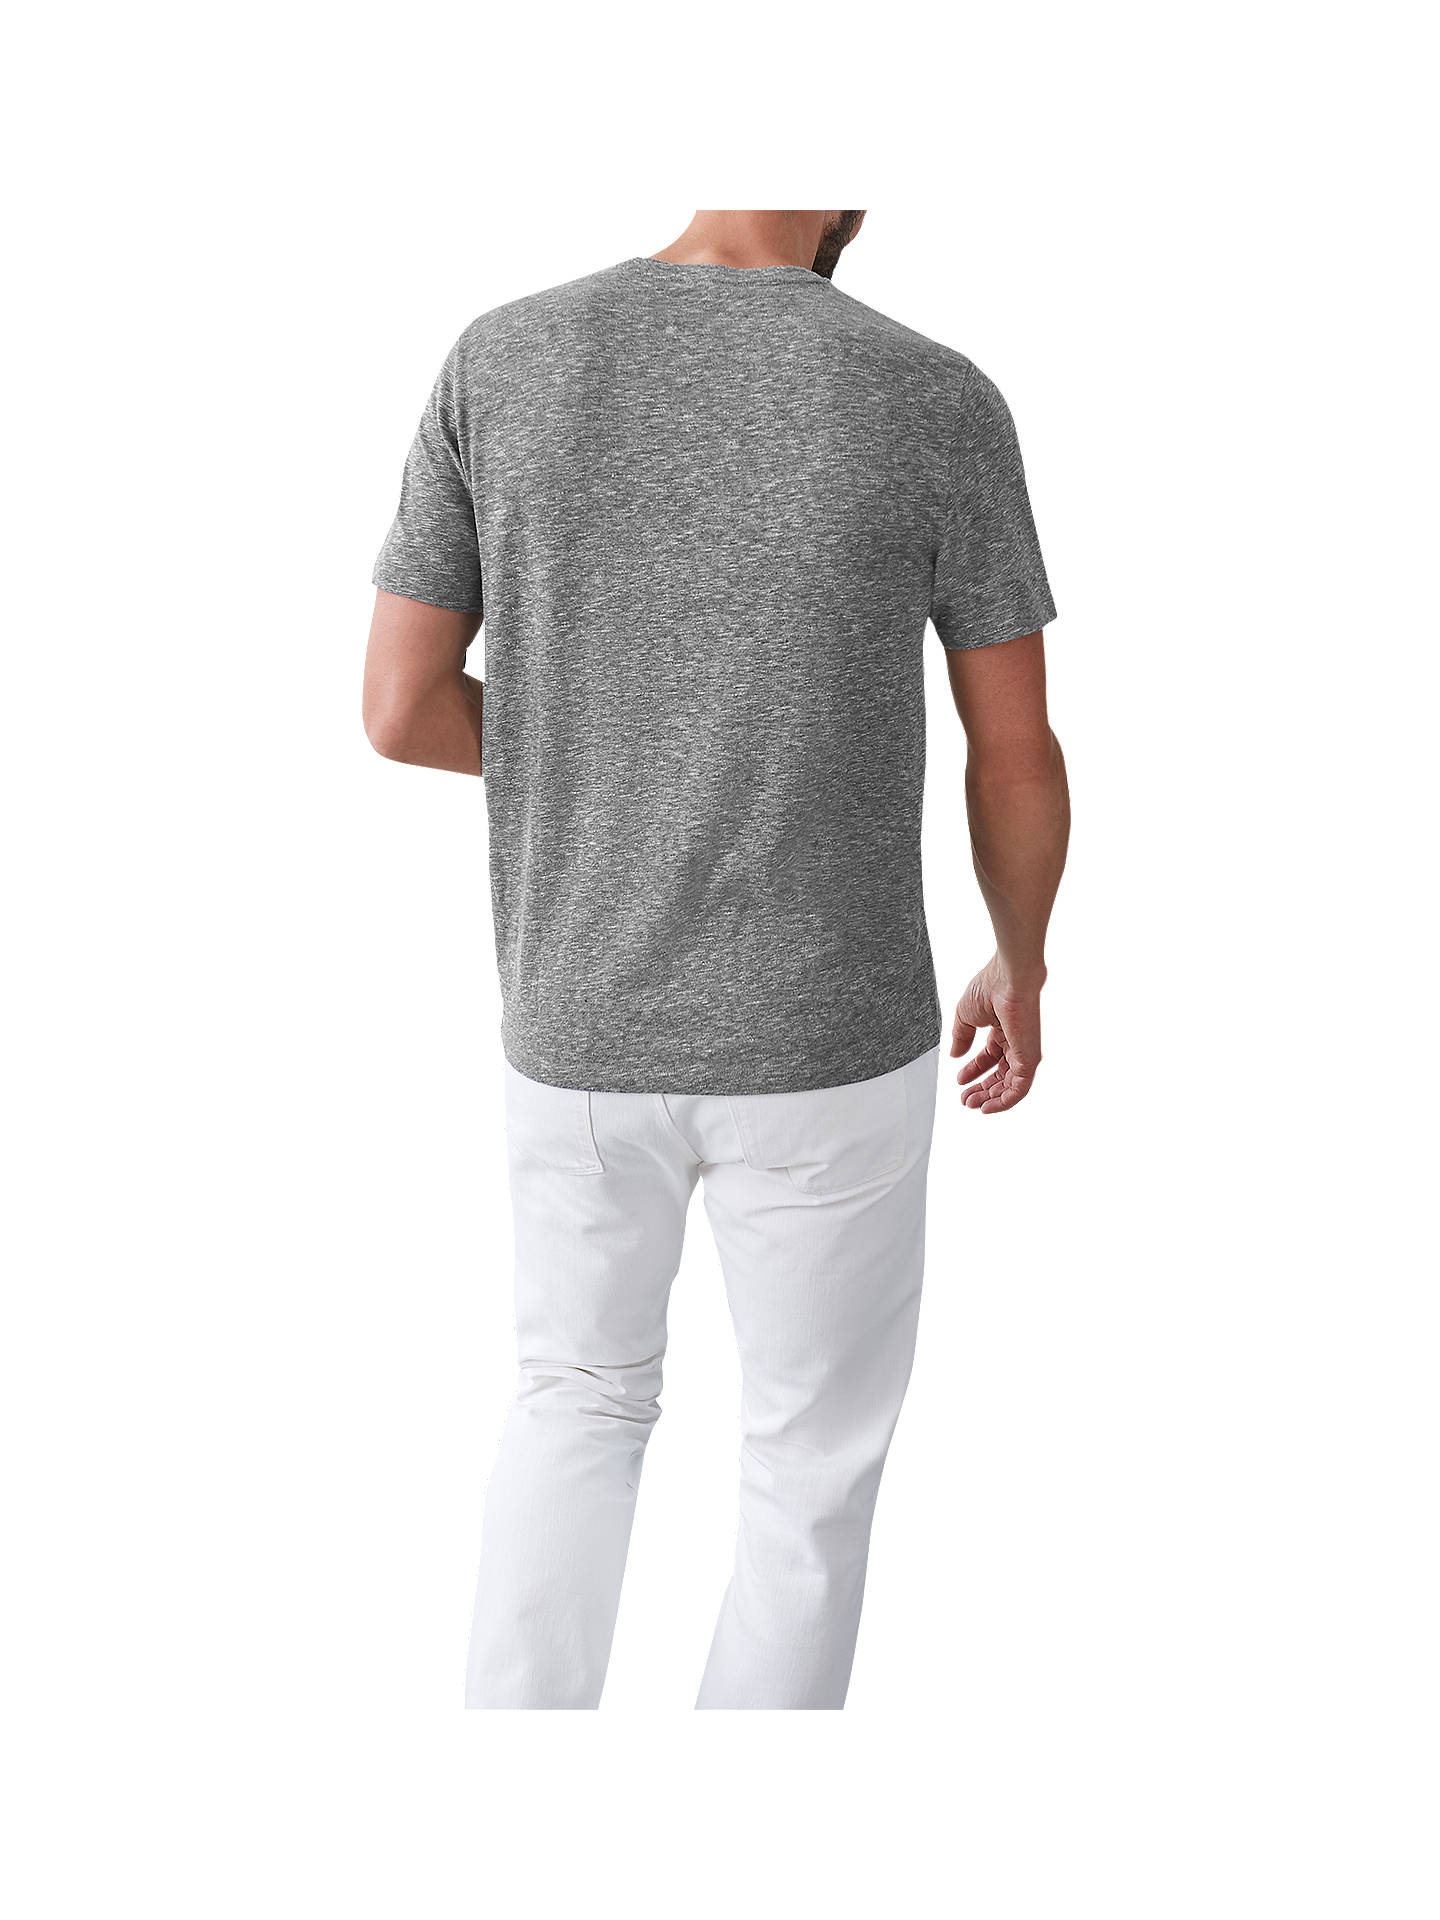 BuyReiss Venice Melange Crew Neck T-Shirt, Soft Grey, S Online at johnlewis.com